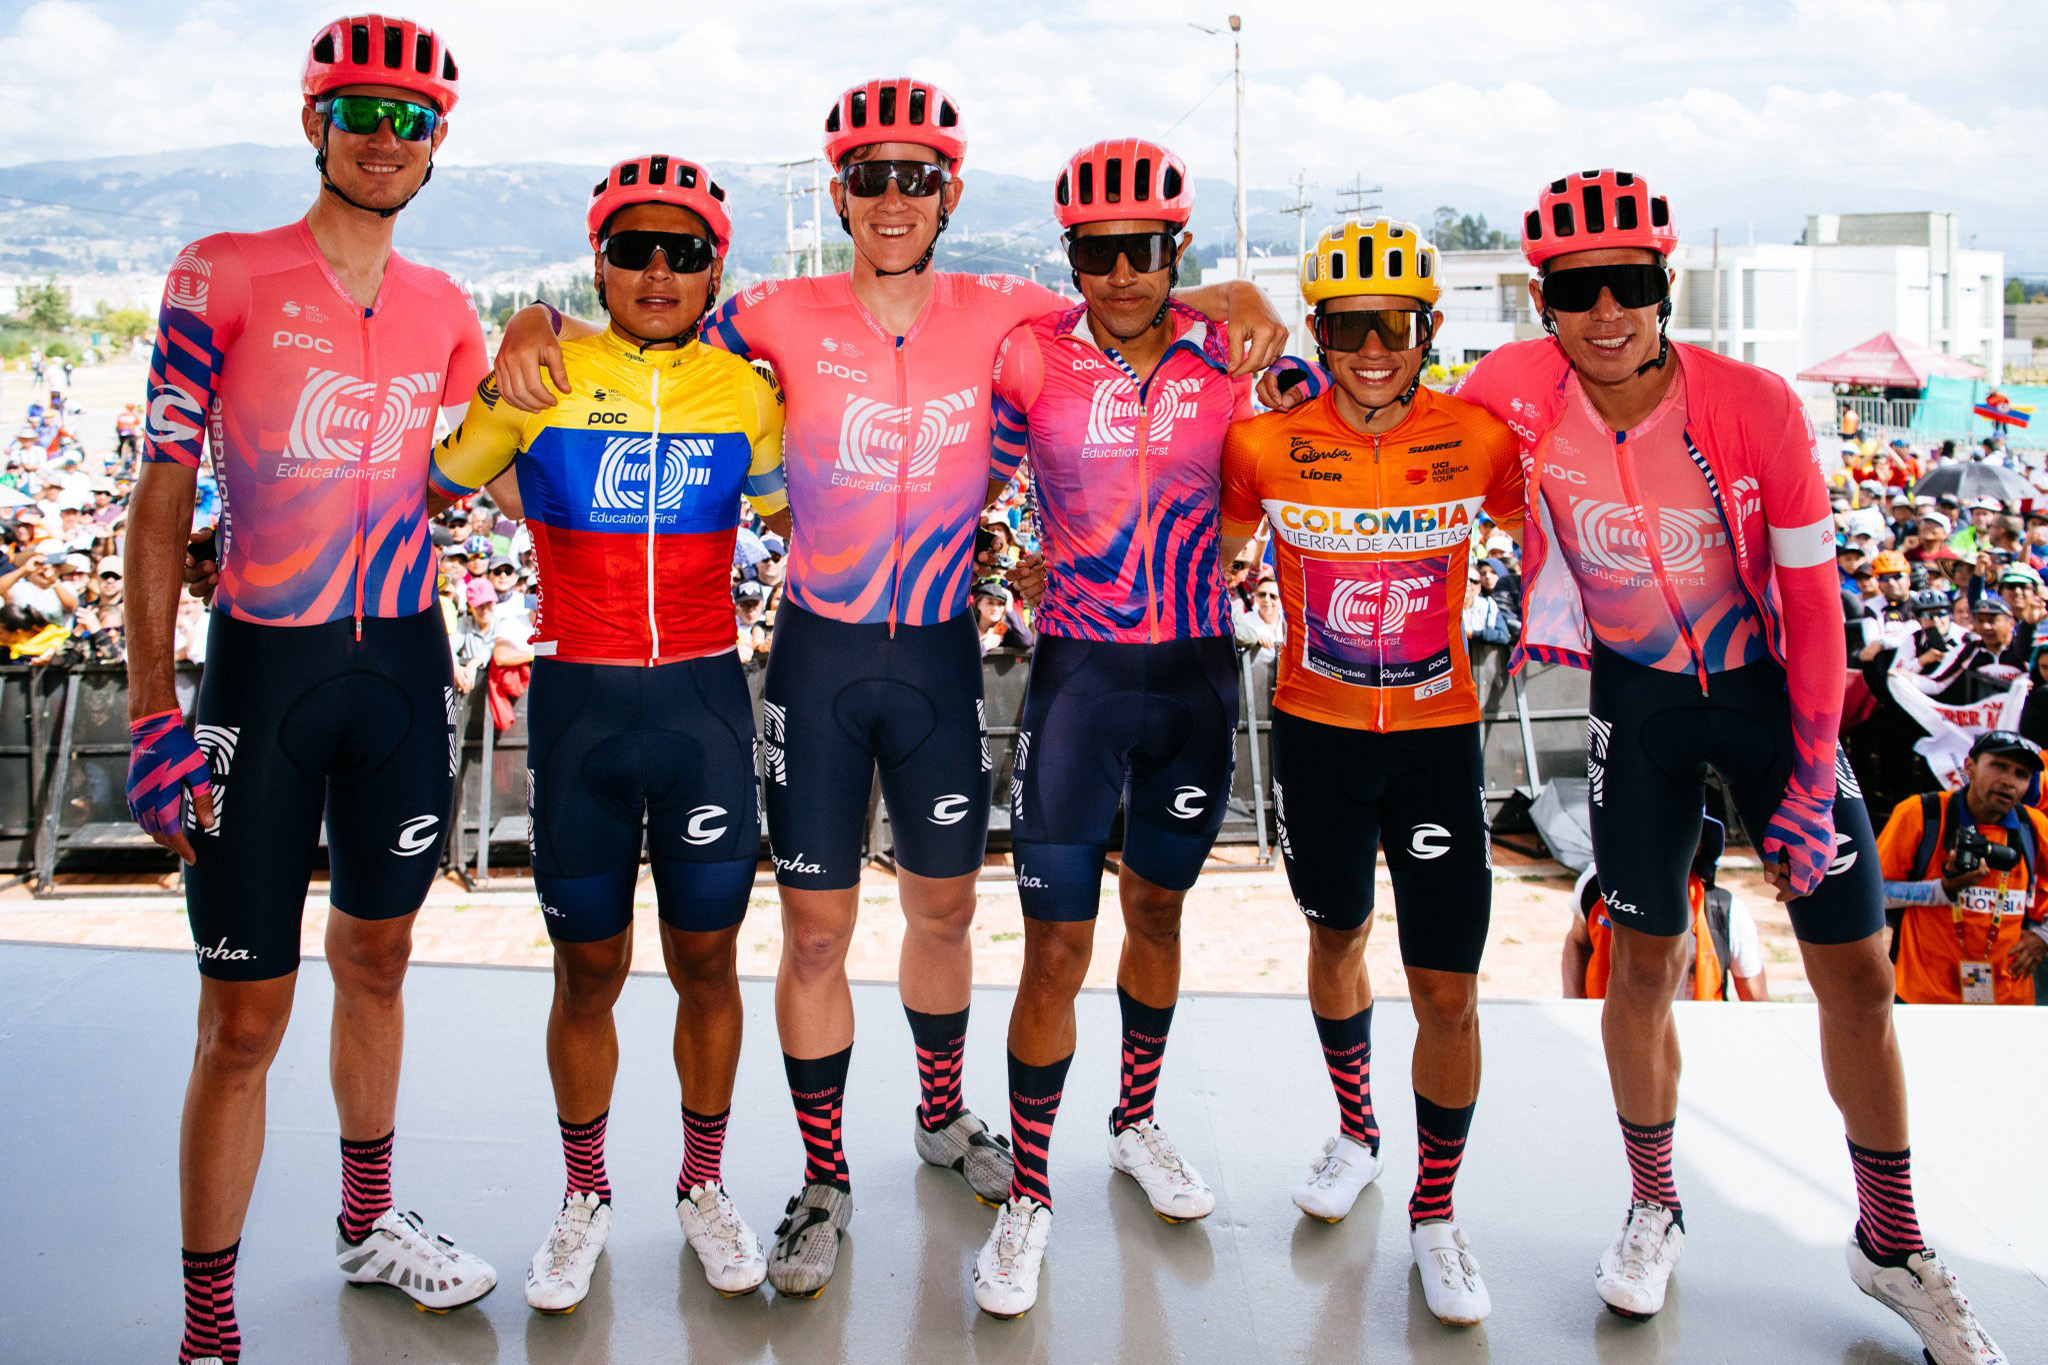 EF Cycling Team Tour de Colombia 2.1